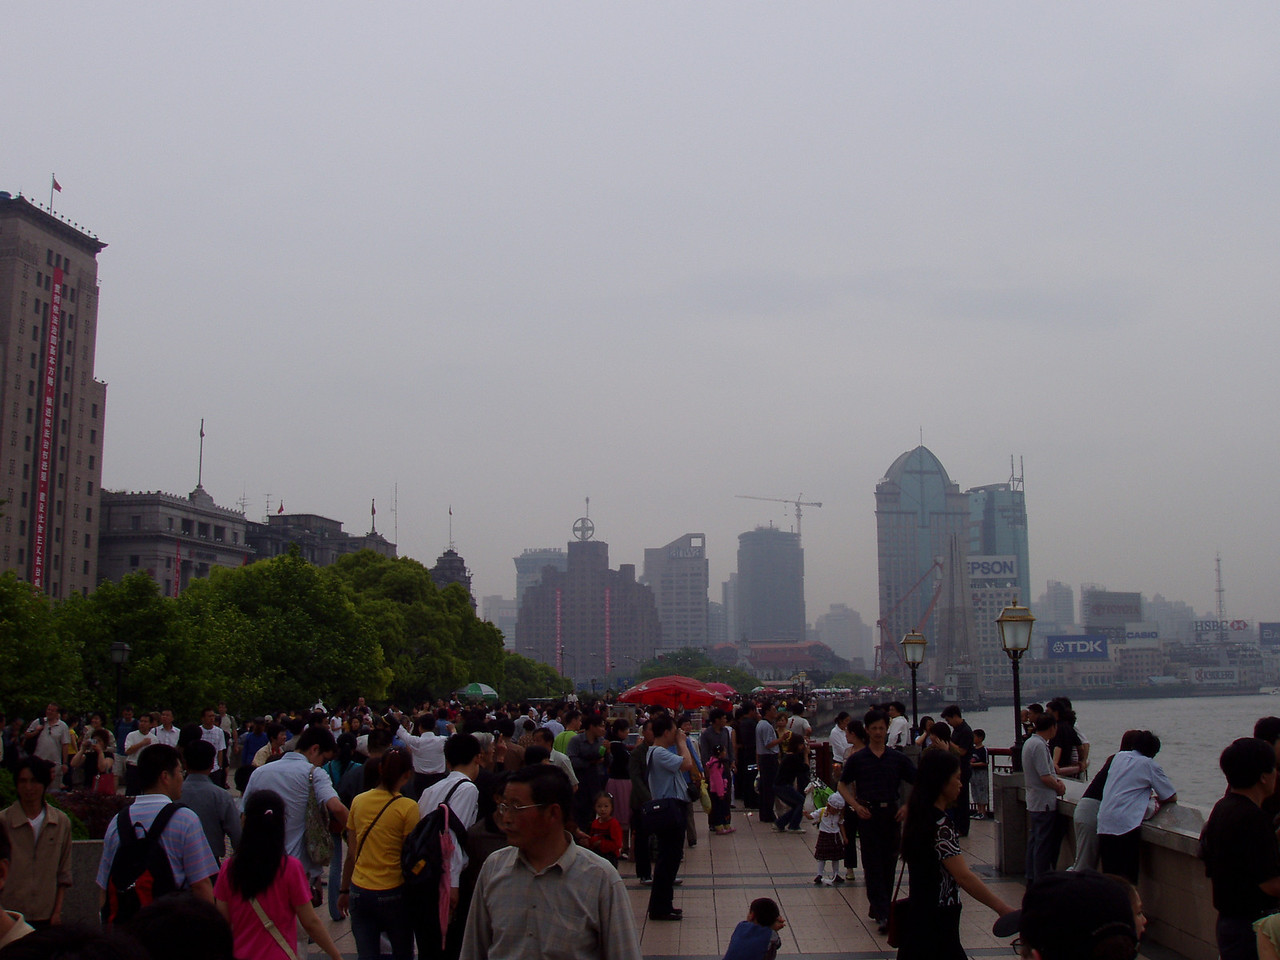 Looking down the Bund at the crowds.